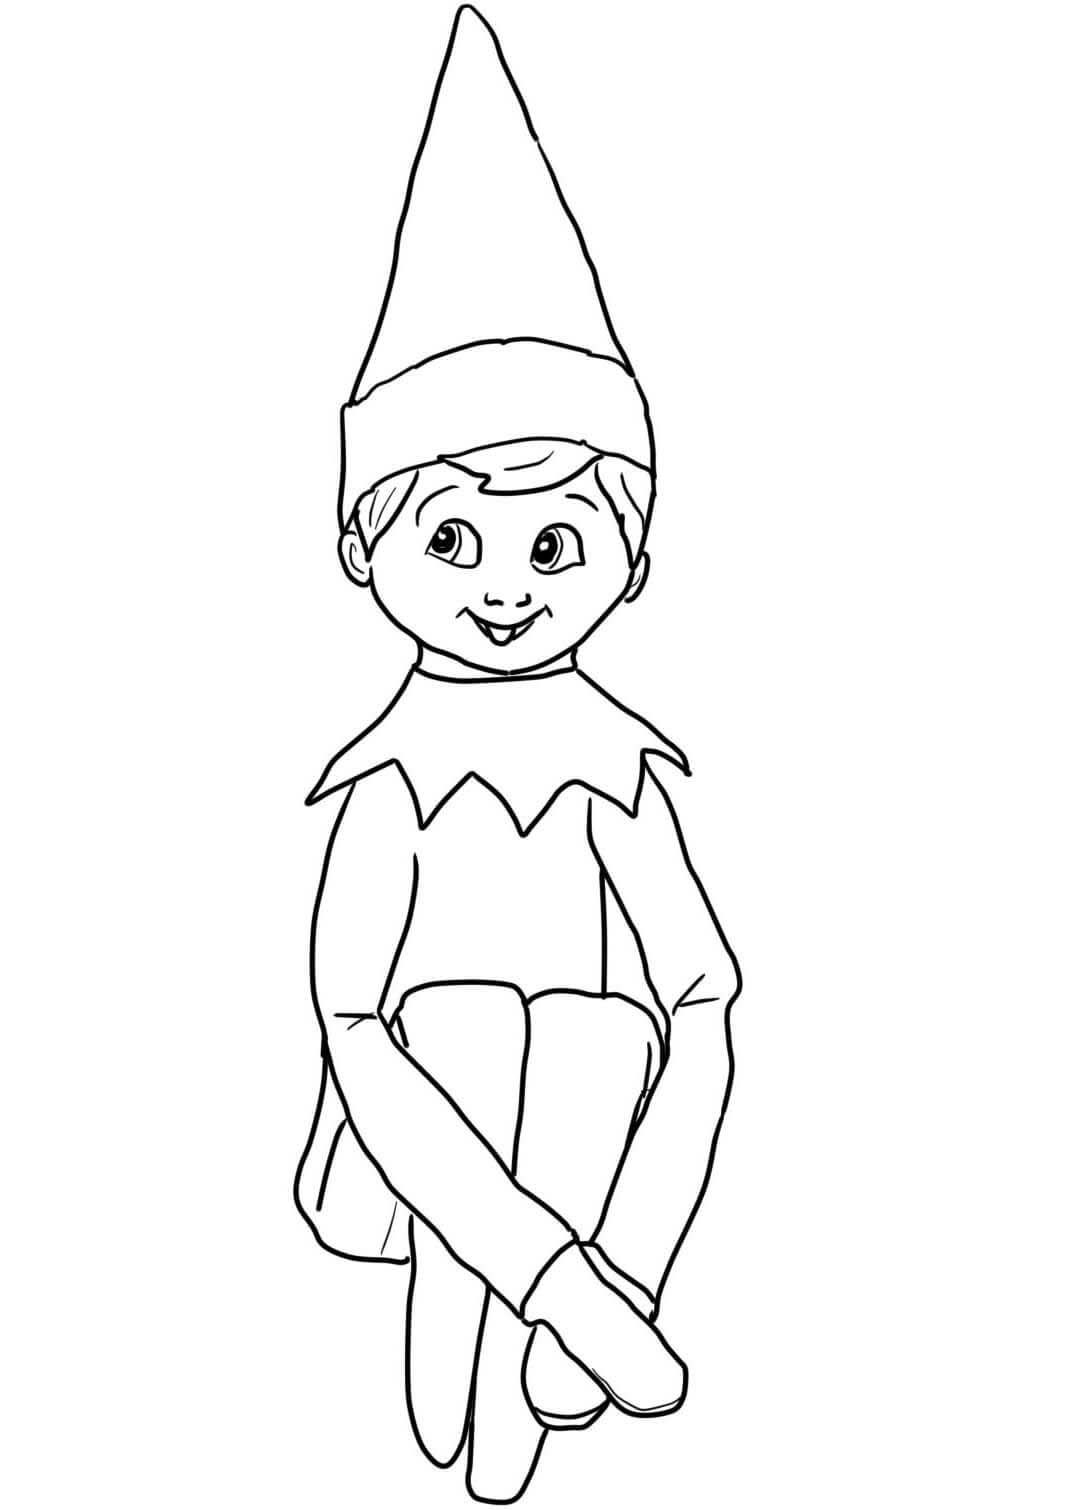 Elf On The Shelf Coloring Pages Worksheet School Christmas Coloring Sheets Santa Coloring Pages Printable Christmas Coloring Pages